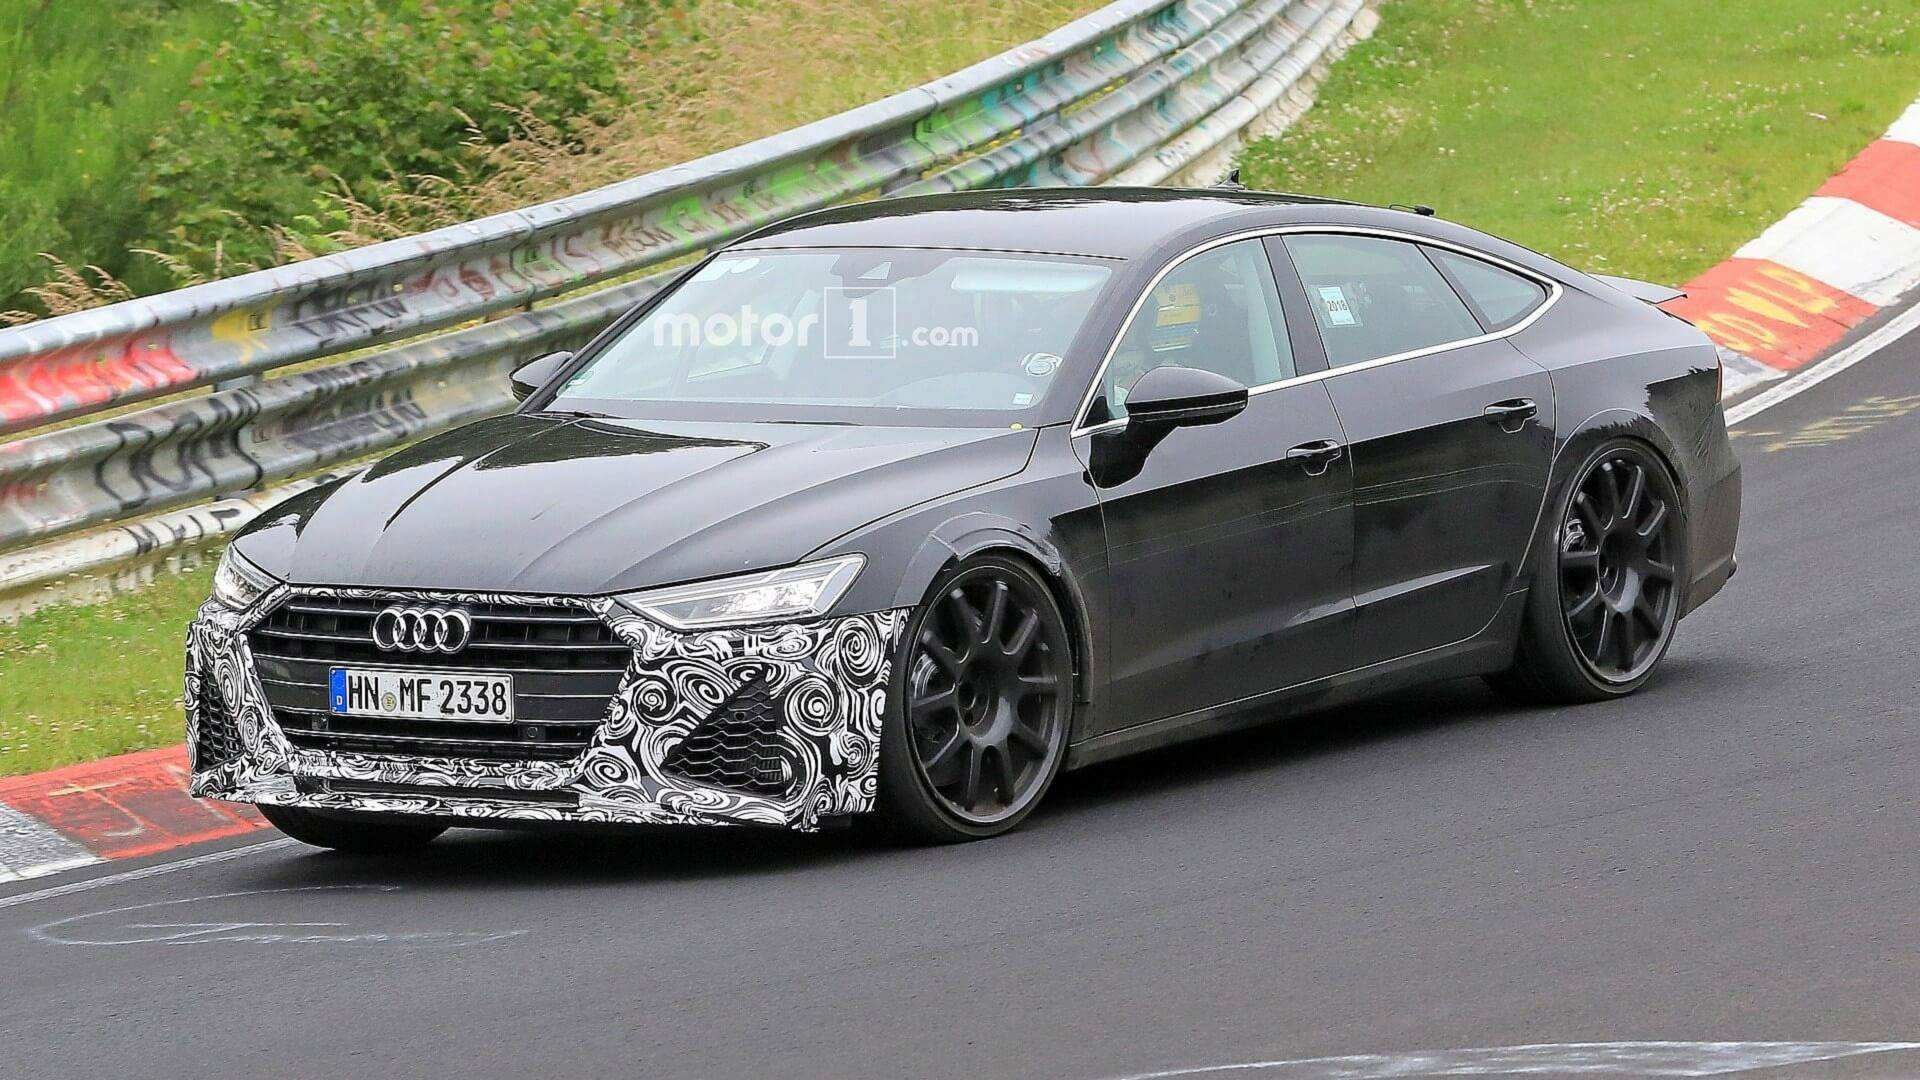 70 All New 2020 Audi S7 Price and Review for 2020 Audi S7